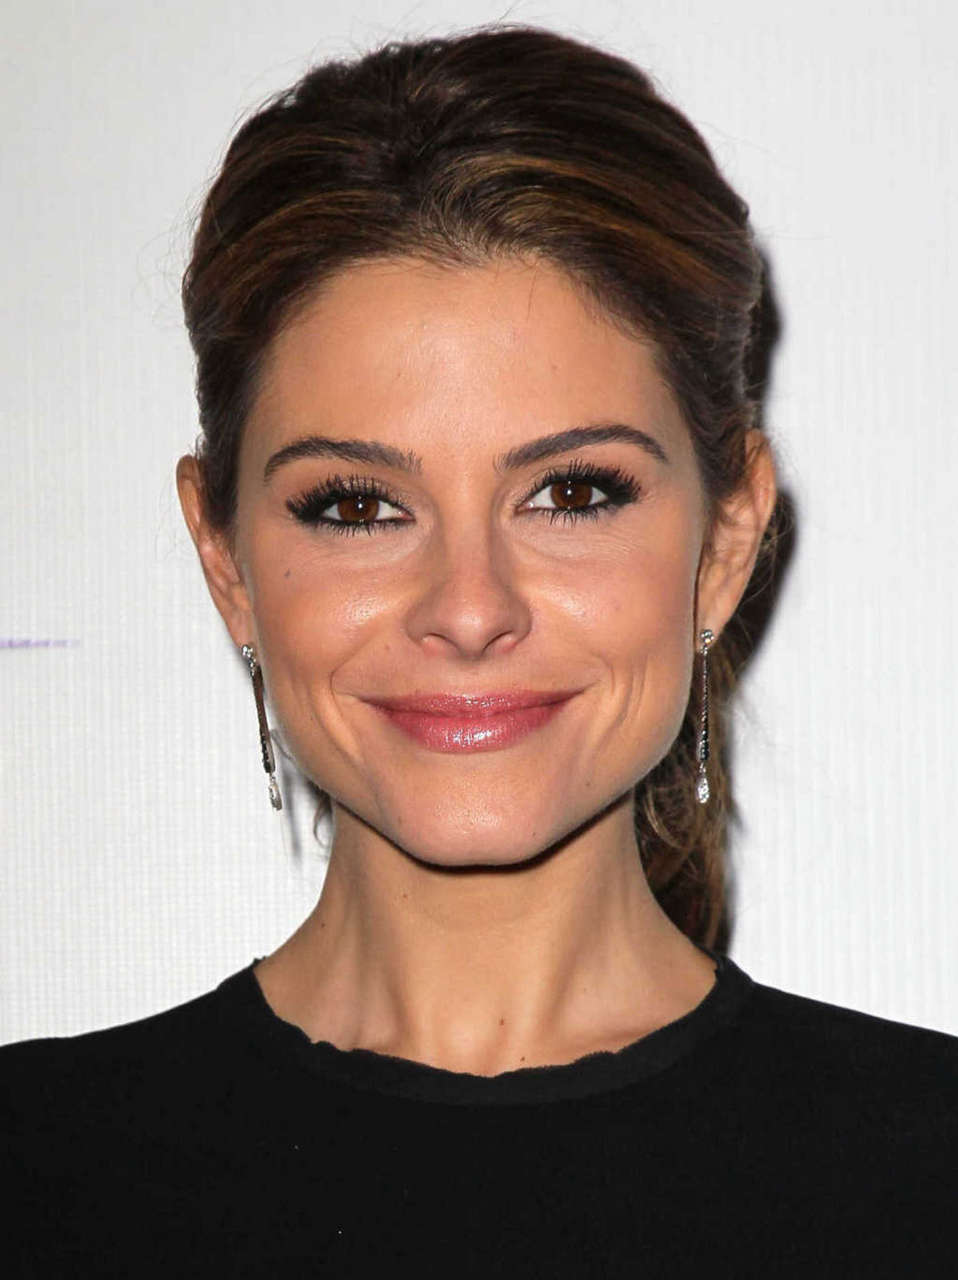 Maria Menounos Tie Knot Charity Launch Benefit Hollywood